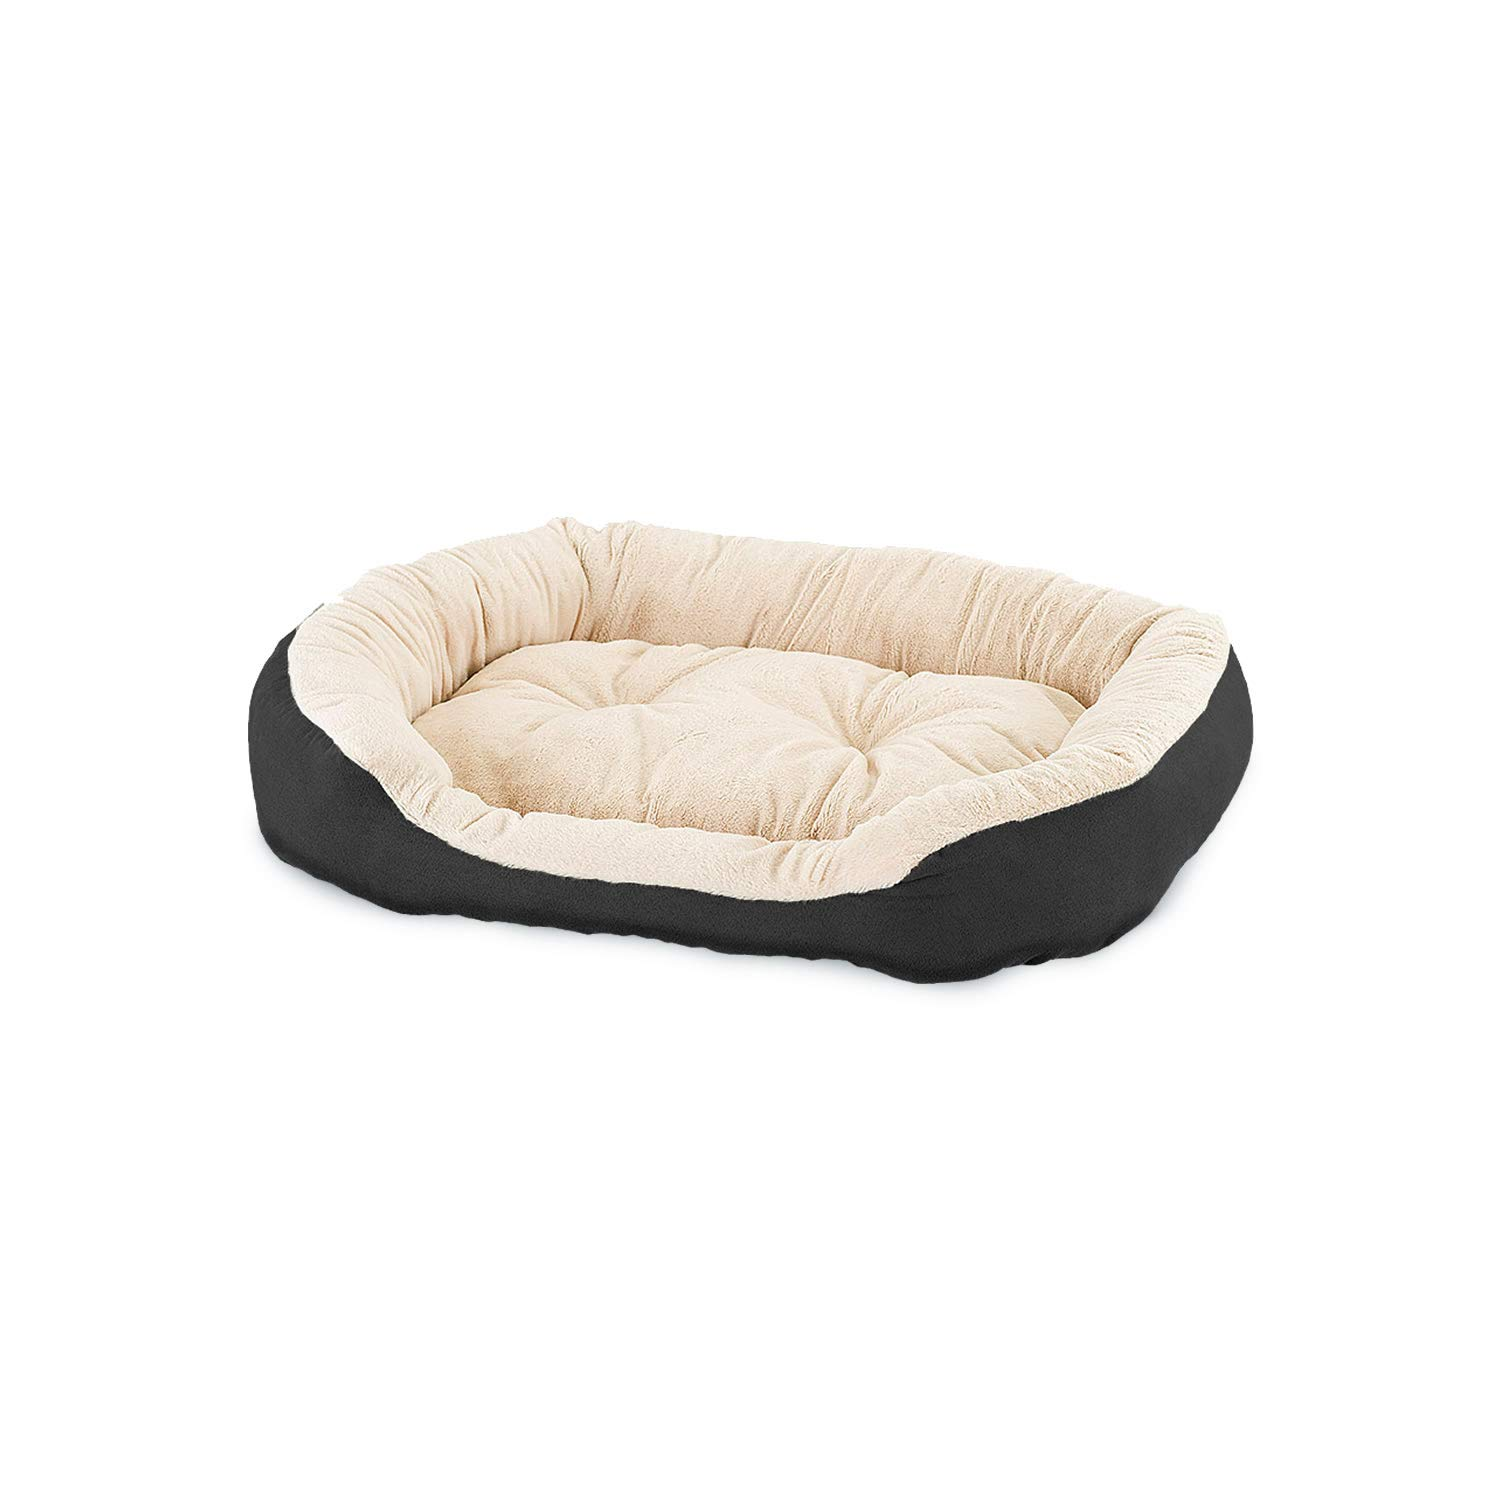 Black 31\ Black 31\ Ethical Pets Sleep Zone Step-in Pet Bed, 31-Inch, Black